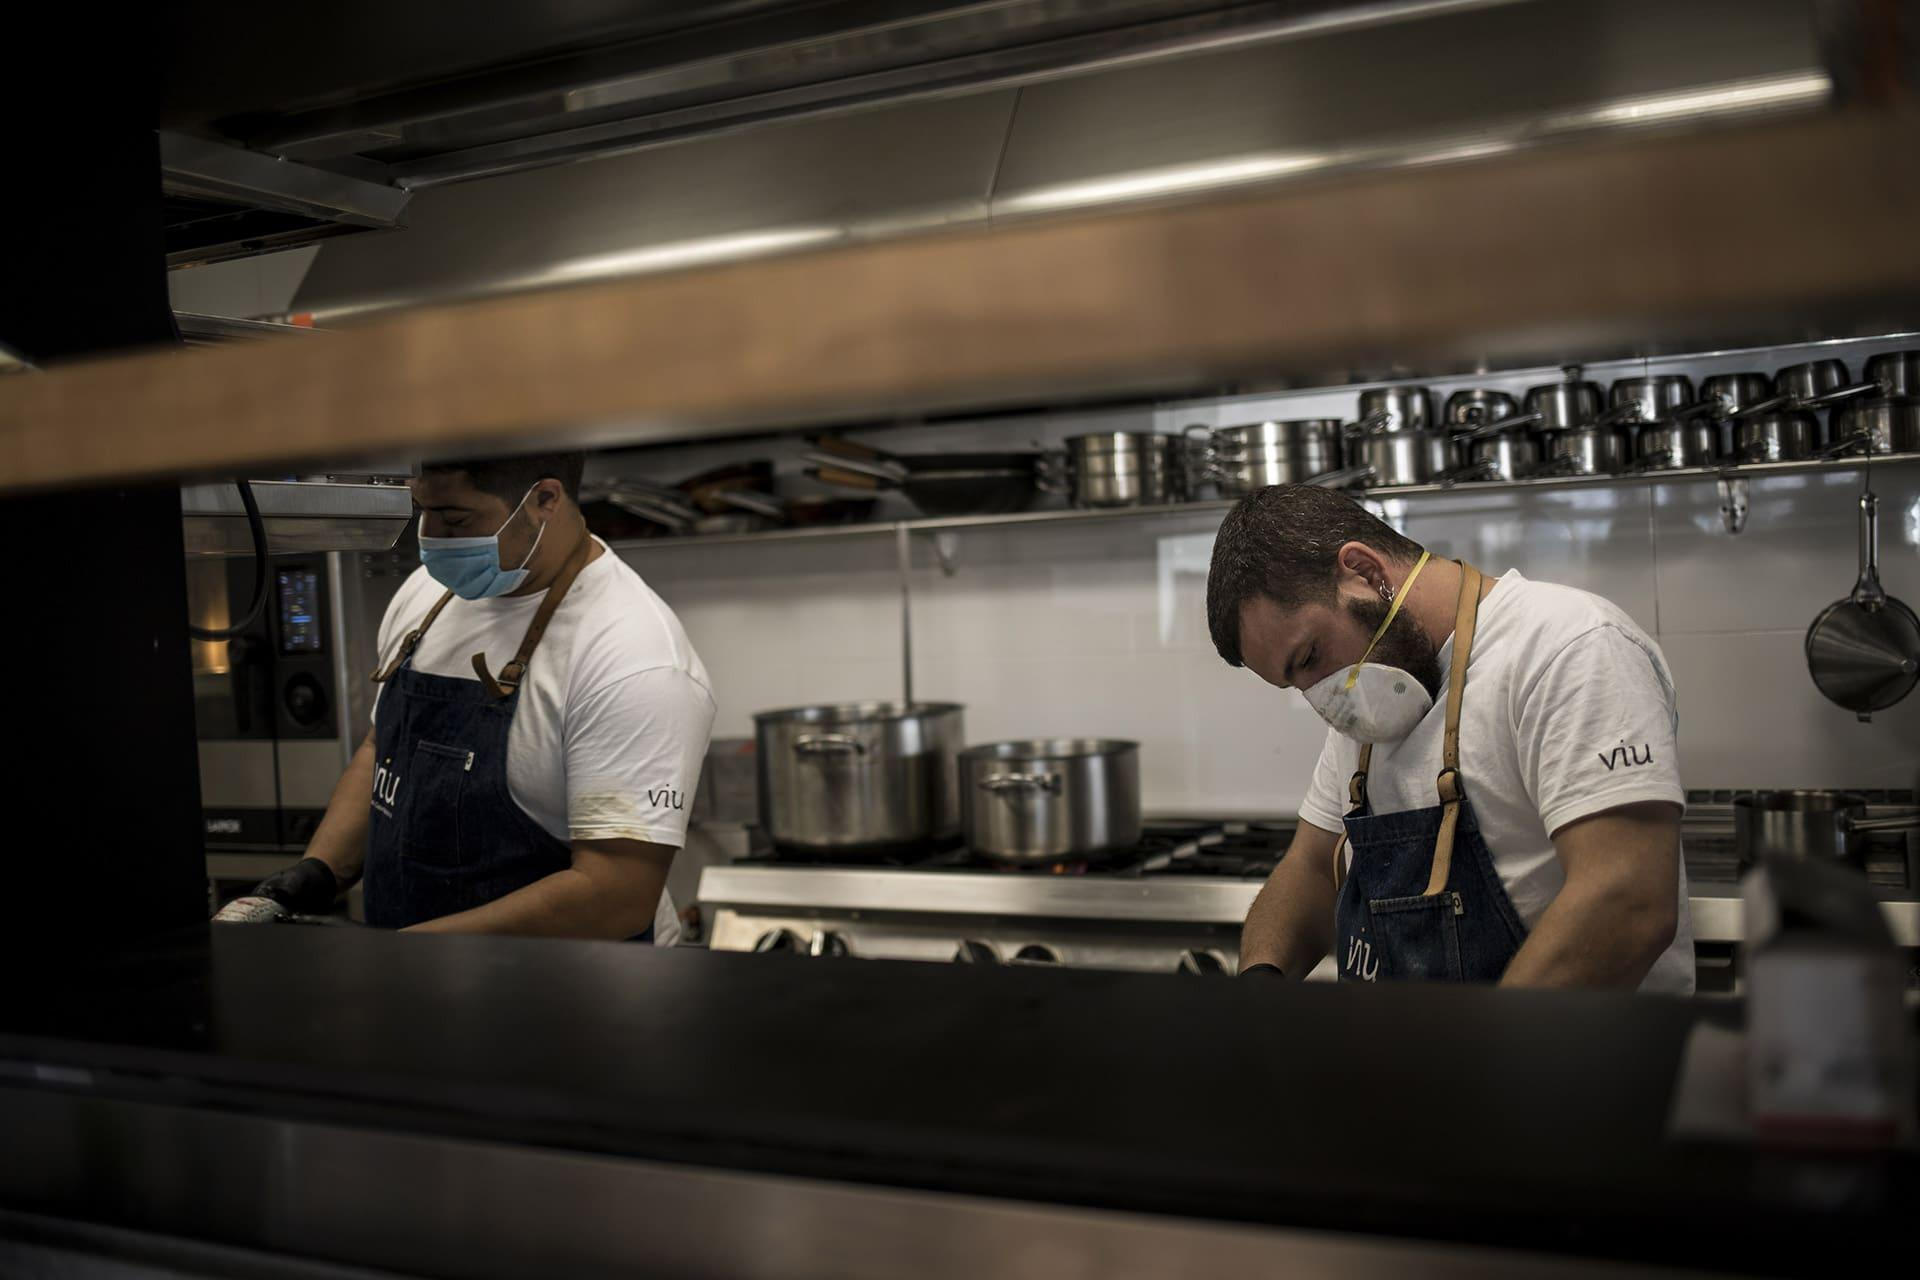 two chefs working in a restaurant